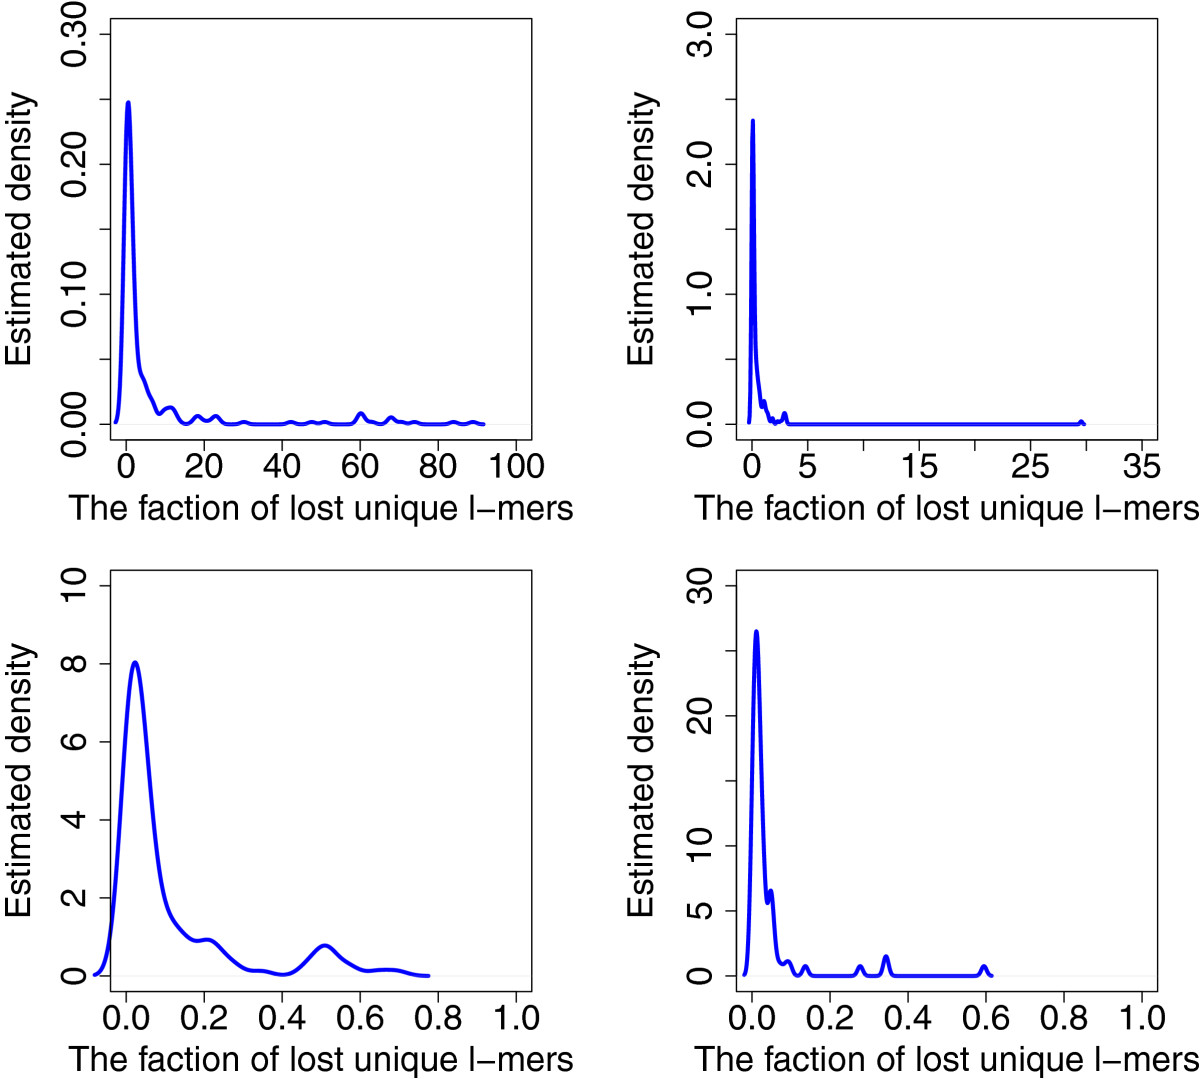 http://static-content.springer.com/image/art%3A10.1186%2F1748-7188-7-27/MediaObjects/13015_2012_Article_162_Fig3_HTML.jpg